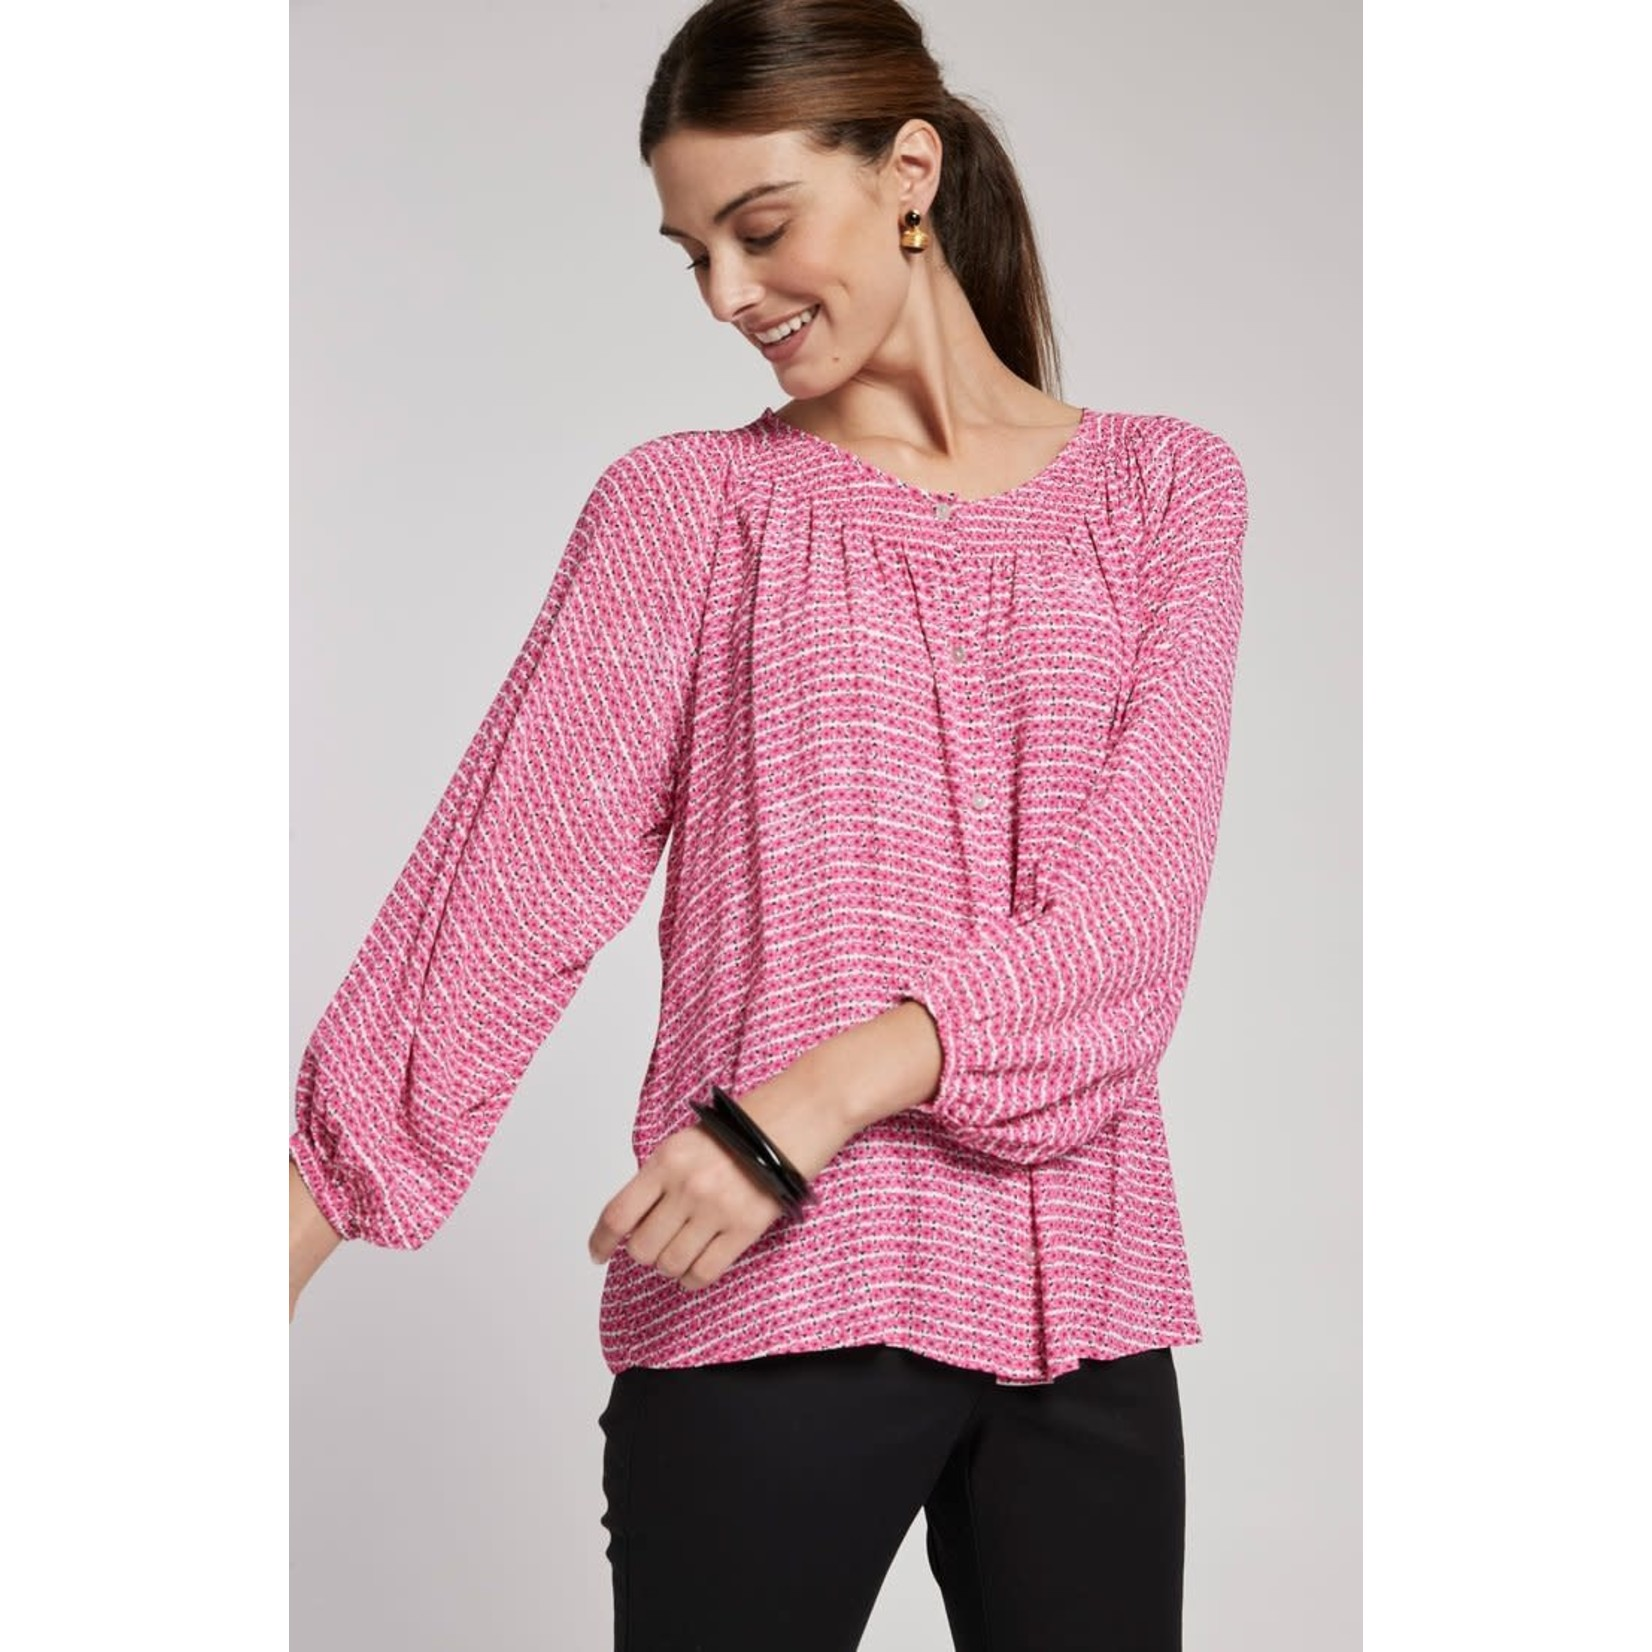 Tyler Boe Riley Ditsy Daisy Pink and White Viscose Top